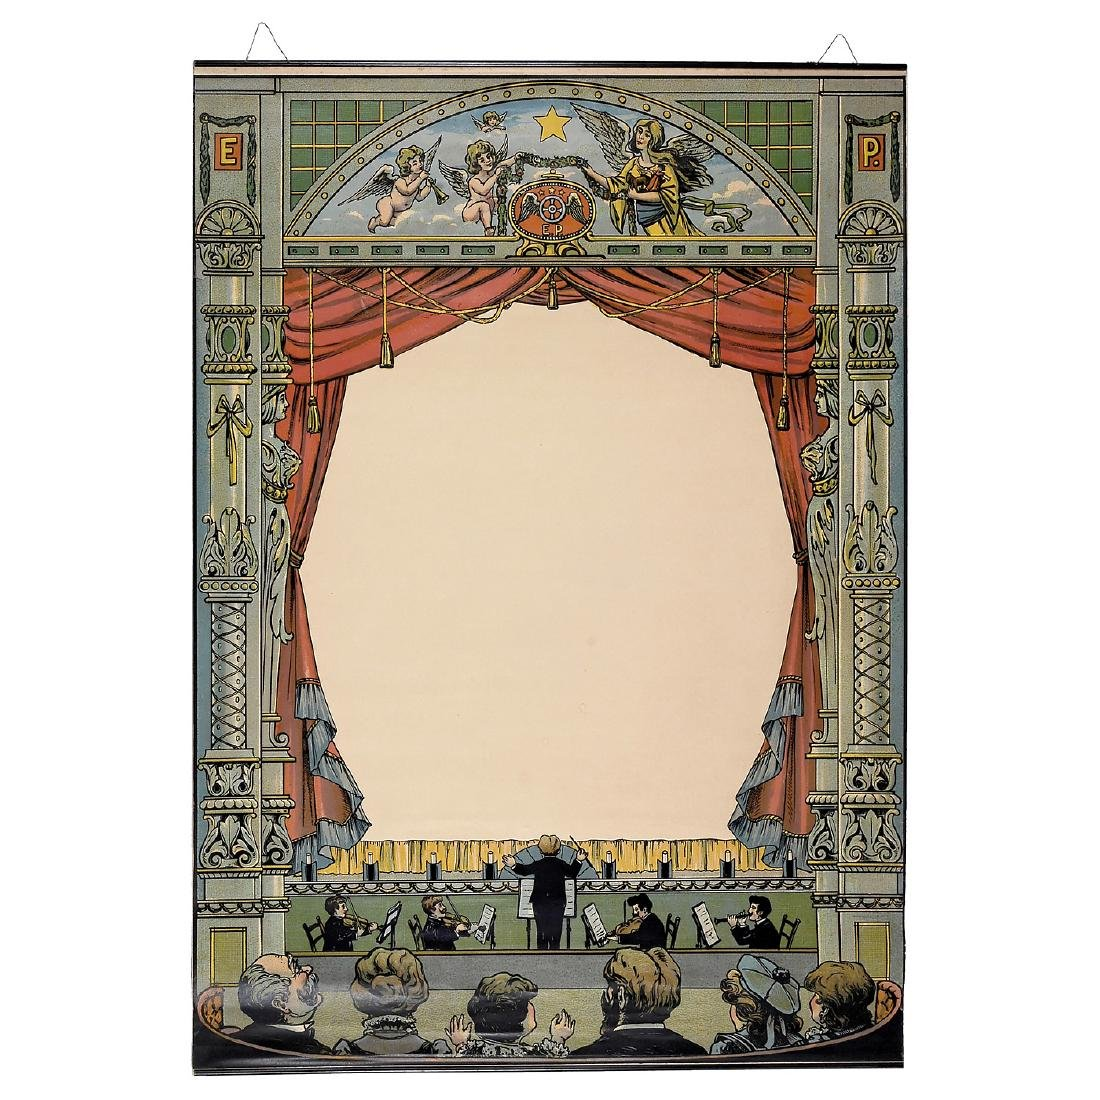 Original Projection Screen by Ernst Plank, 1914